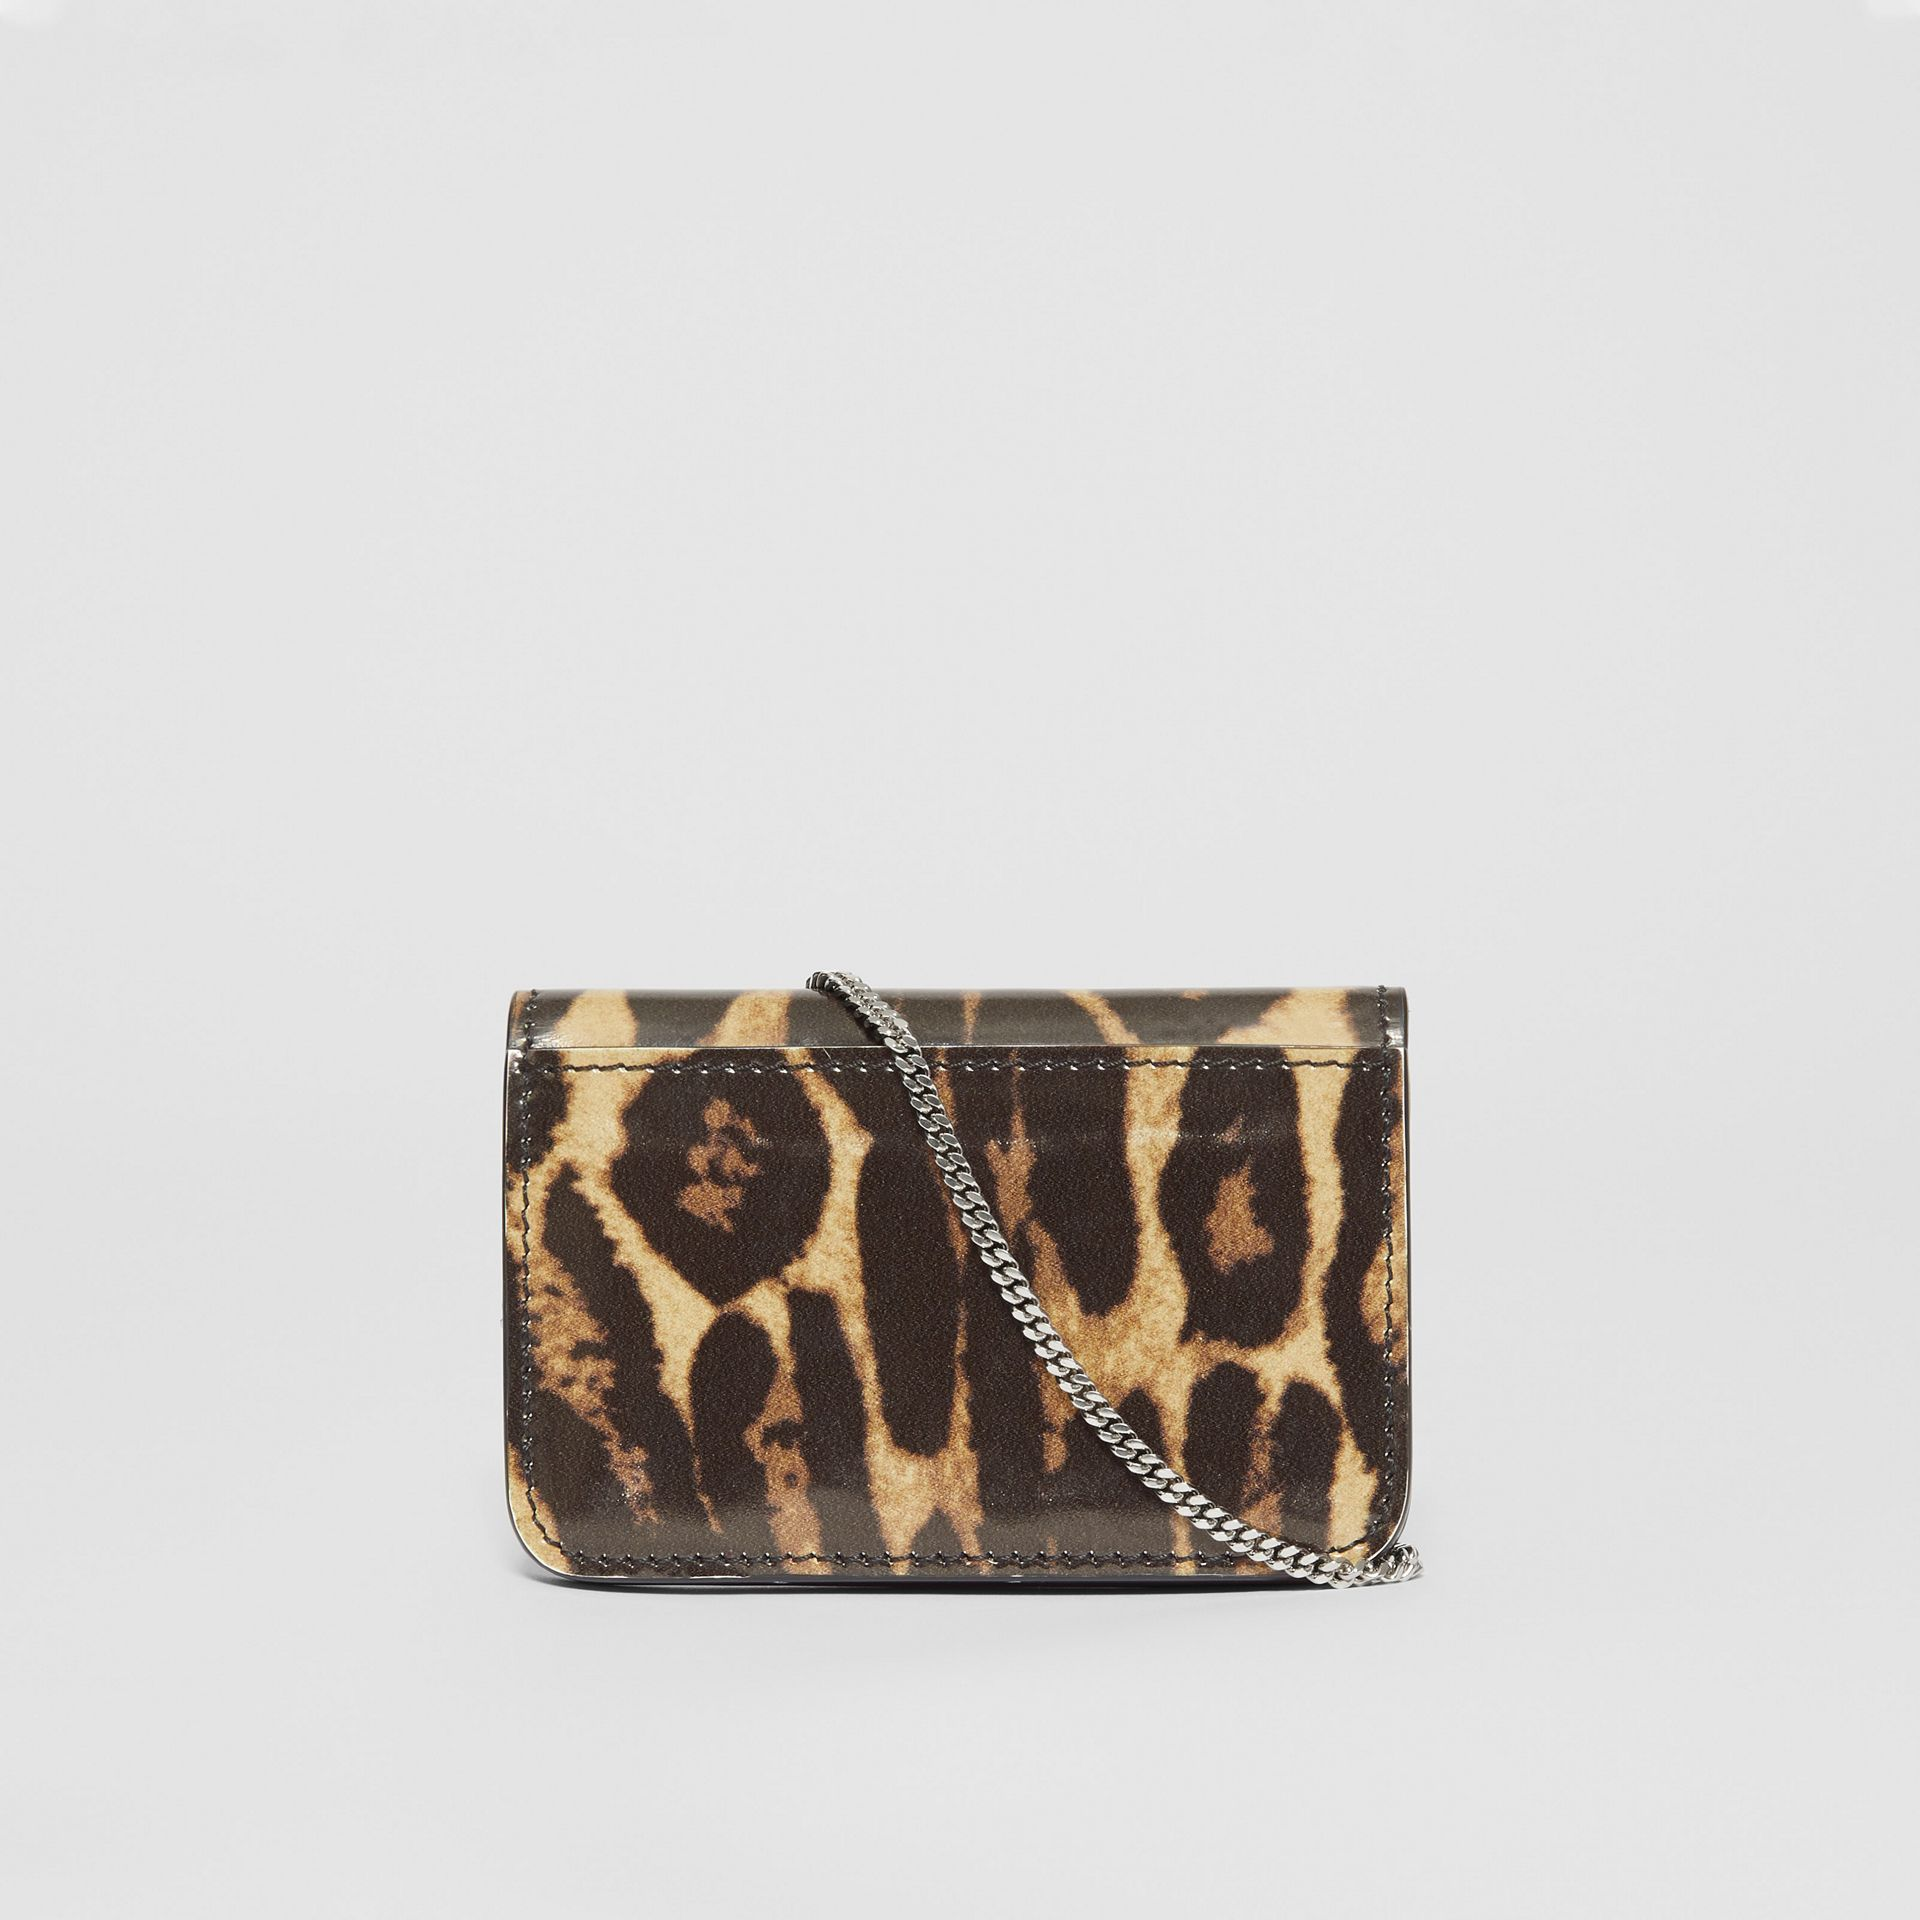 Leopard Print Leather Card Case with Chain Strap in Dark Mustard - Women | Burberry - gallery image 7